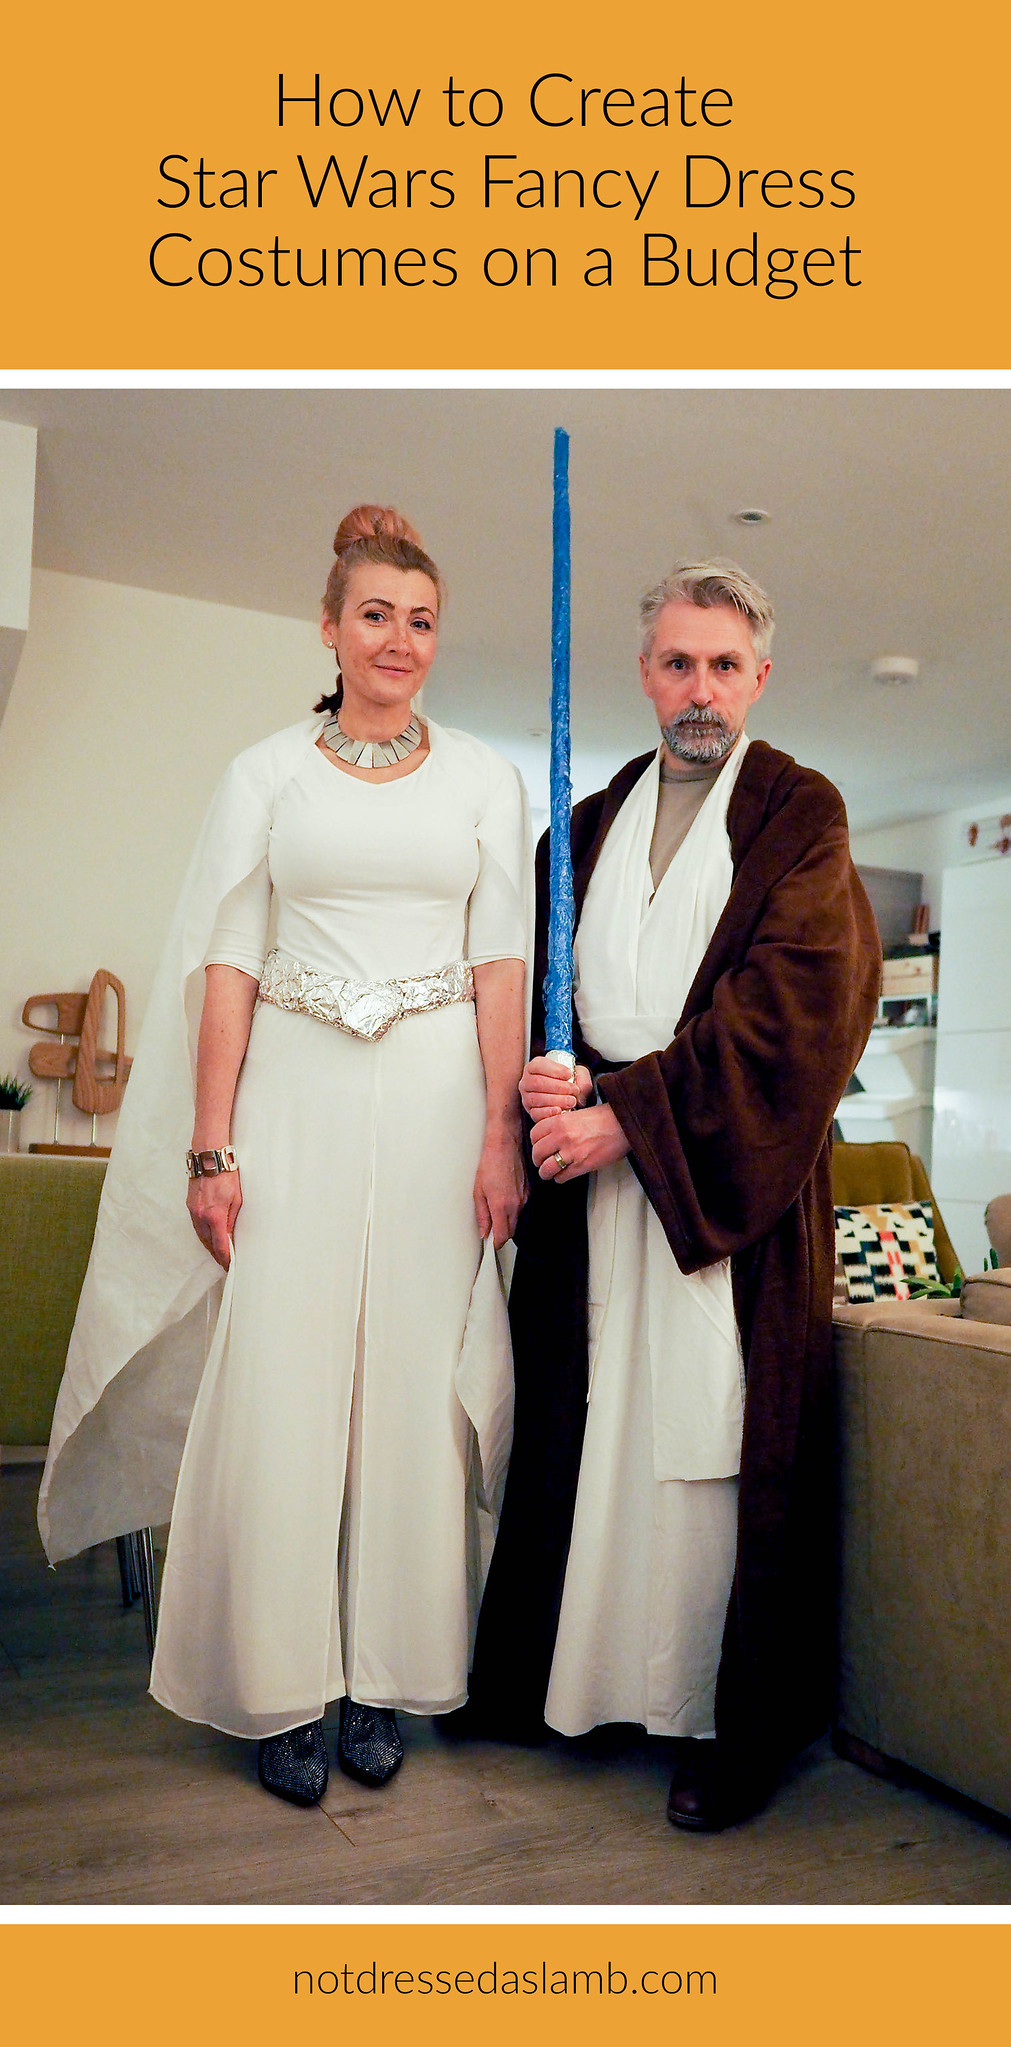 Star Wars Fancy Dress Party for Two (Costumes on a Budget): Princess Leia and Obi Wan Kenobi | Not Dressed As Lamb